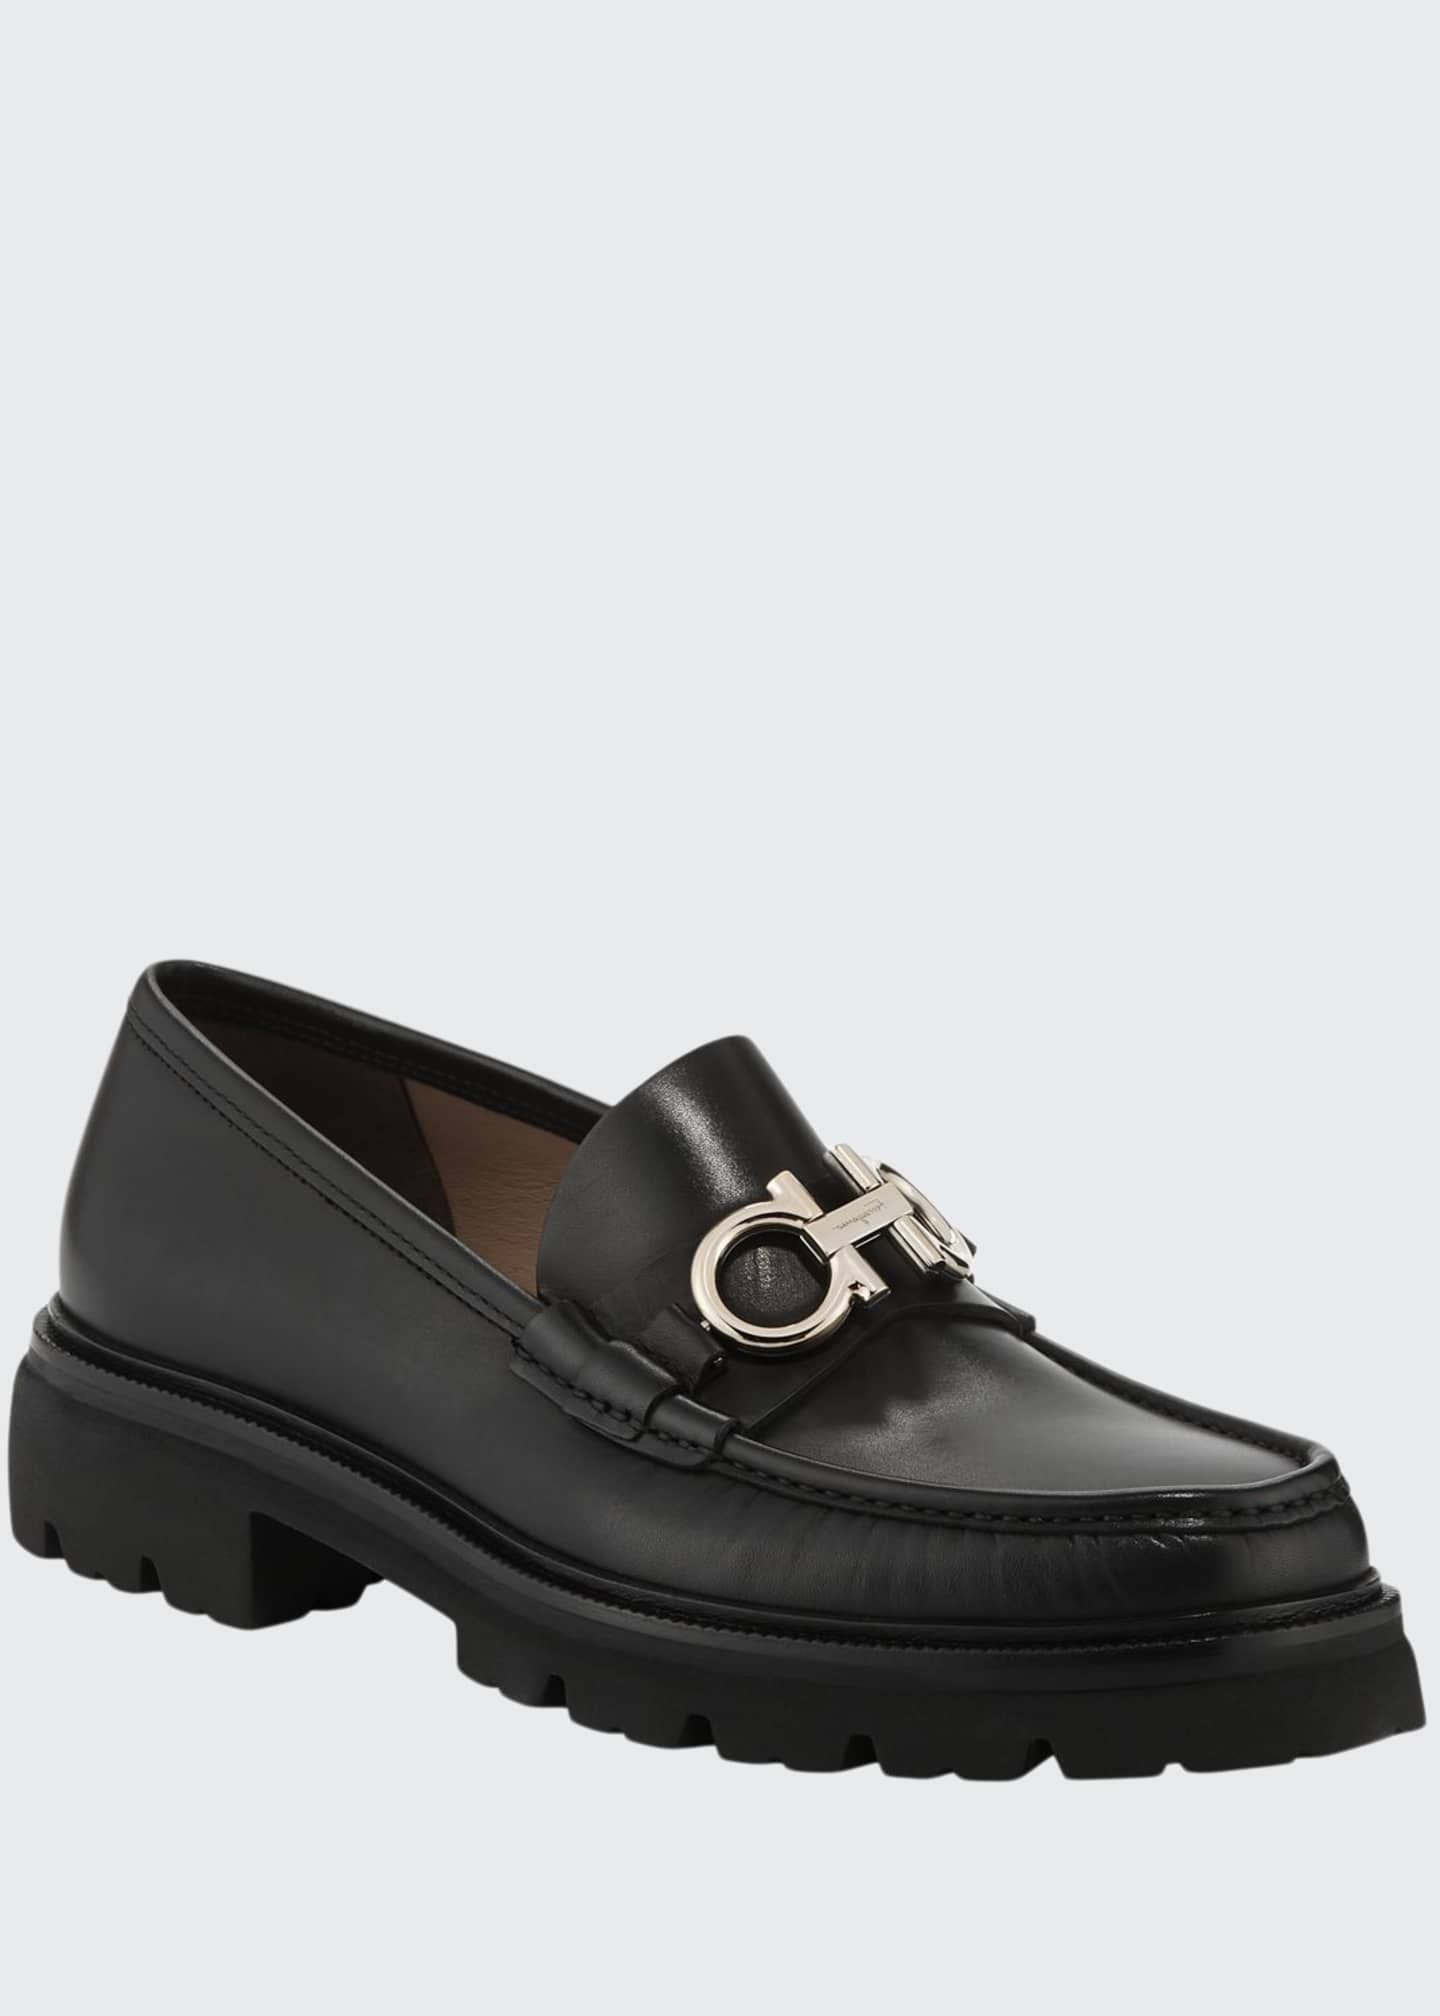 Image 1 of 3: Men's Bleecker Leather Lug-Sole Loafers with Reversible Bit